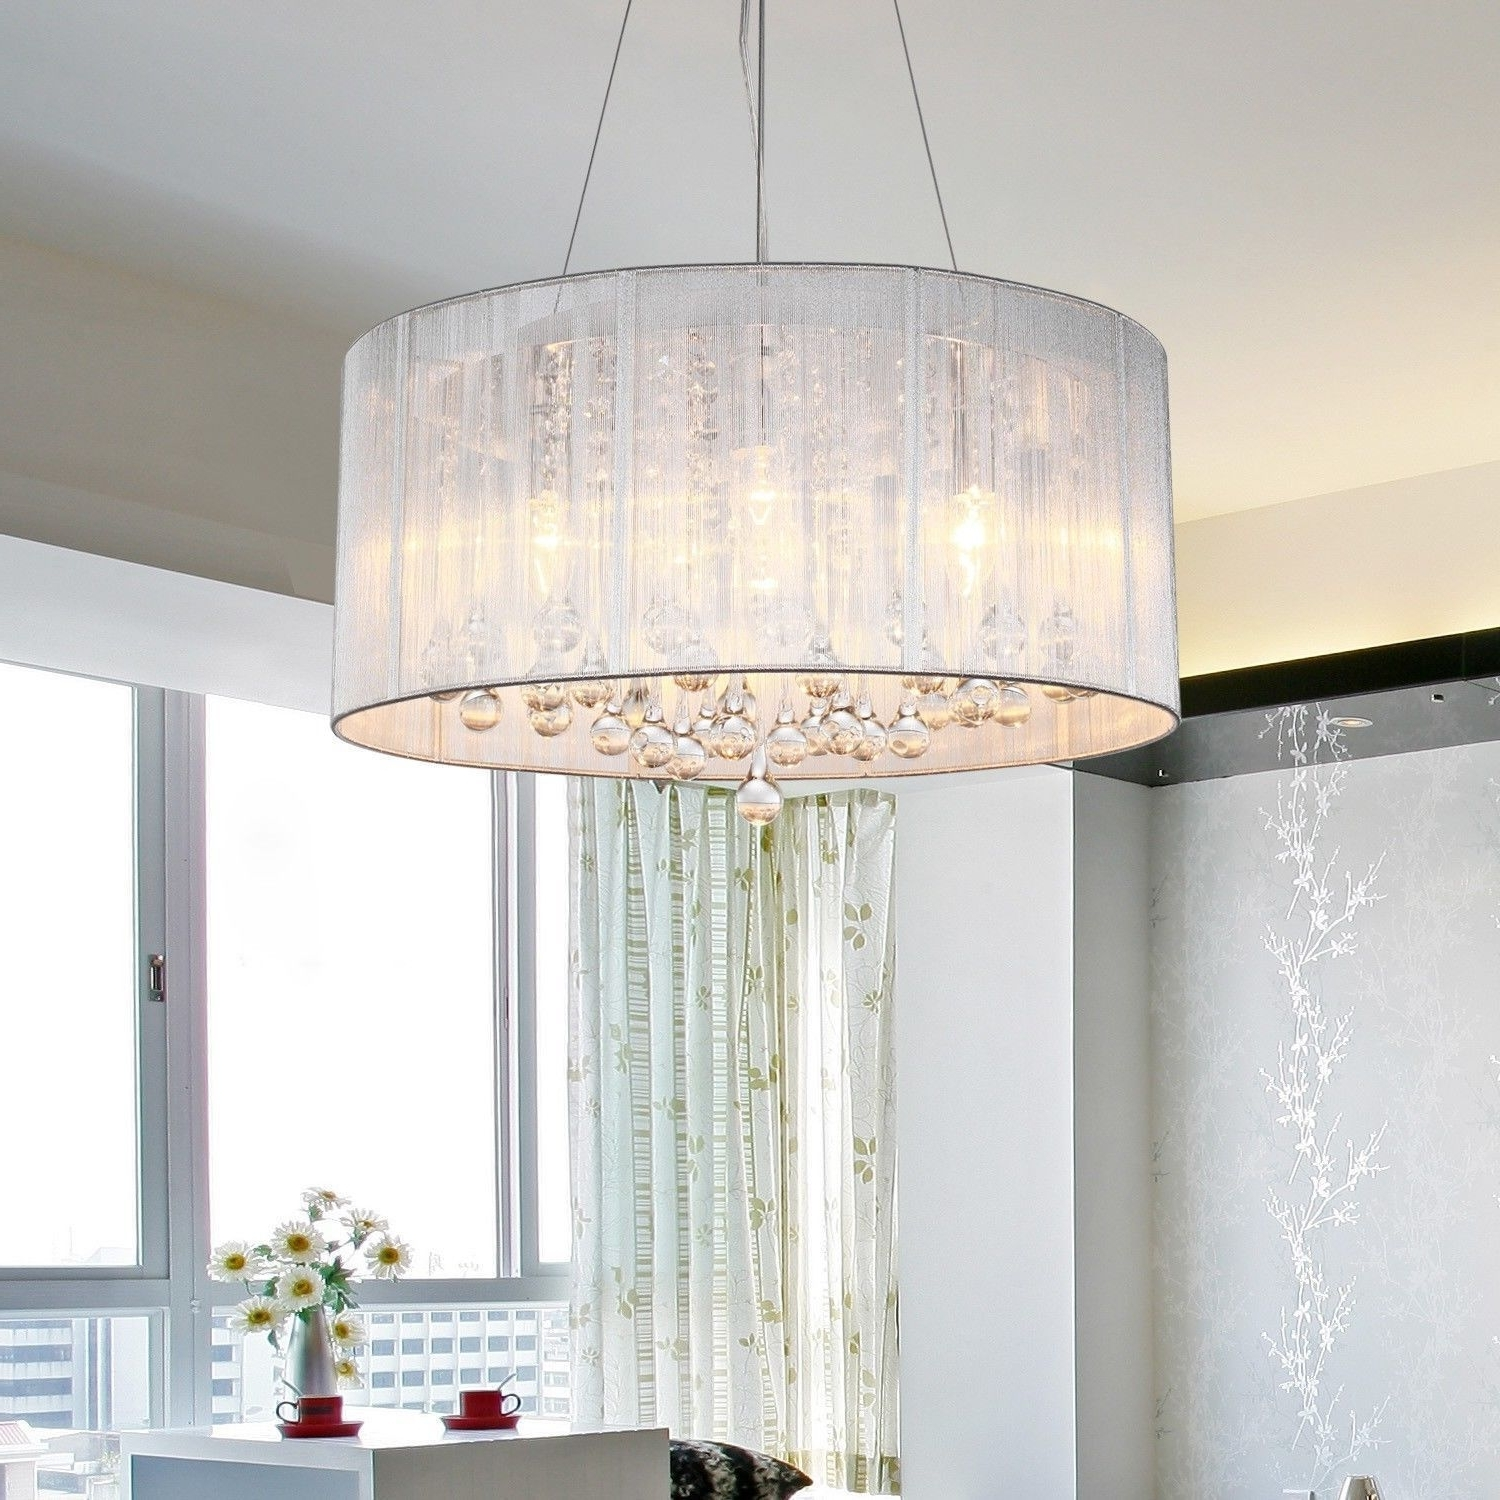 Most Popular Chandelier Lampshades Within Contemporary Chandelier Lamp Shades : Antique Contemporary Lighting (View 15 of 15)